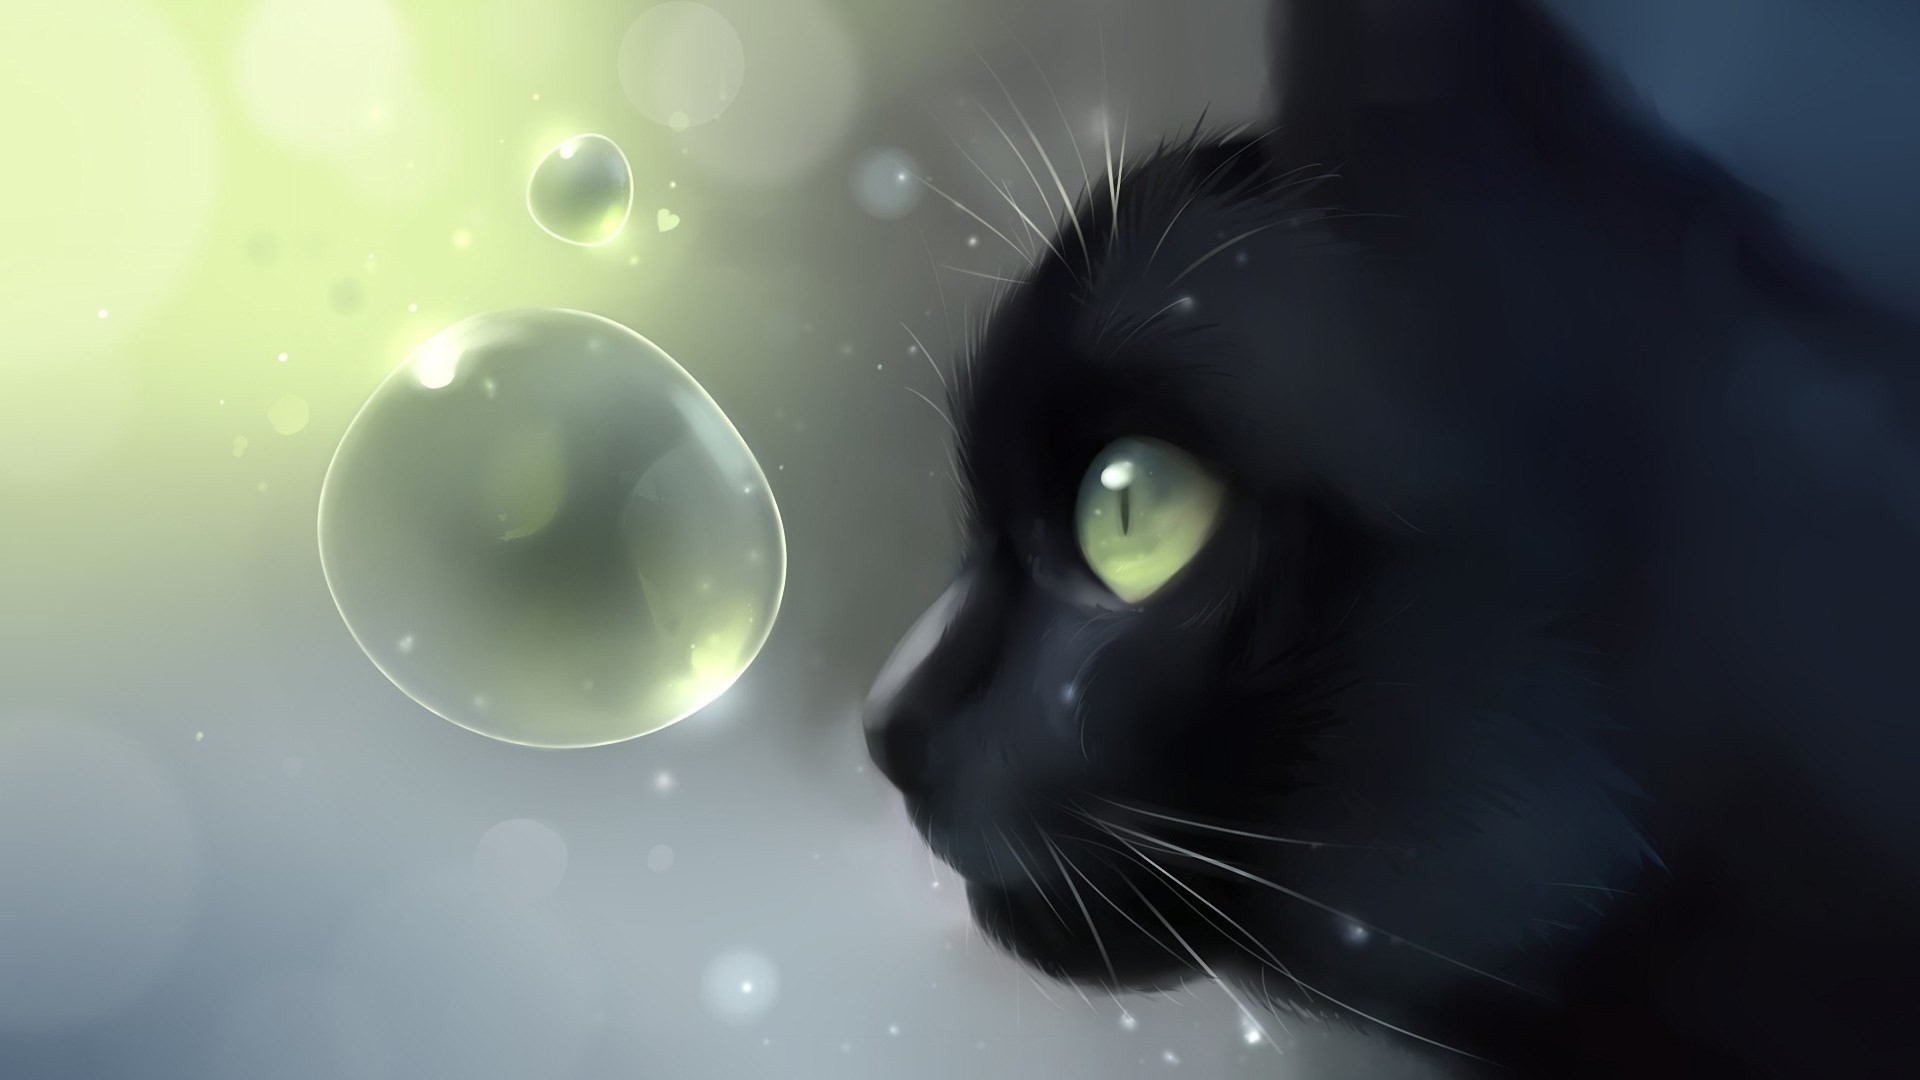 Anime cat wallpaper 63 images - Anime cat wallpaper ...